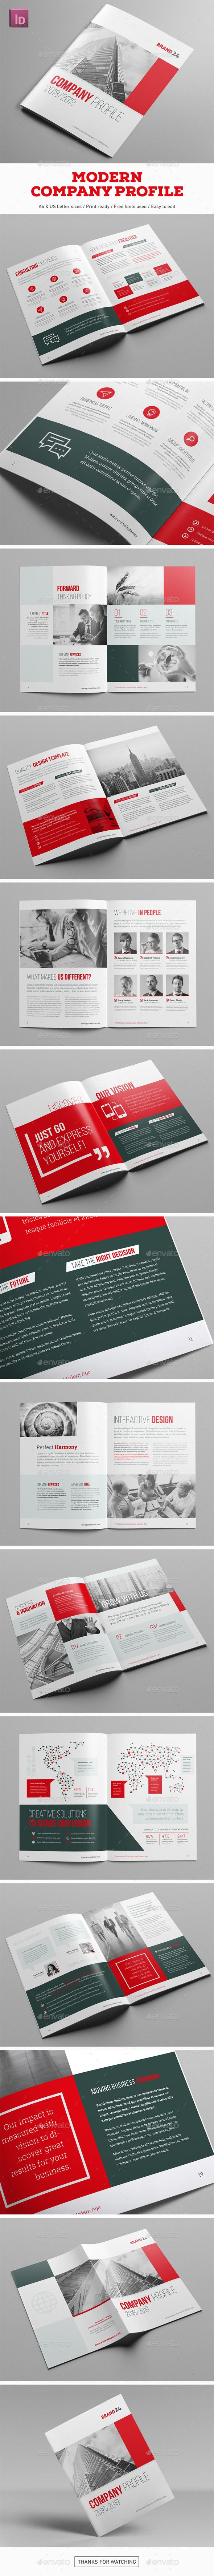 Modern Company Profile Brochure Template InDesign INDD - 20 Pages A4 & US Letter Size